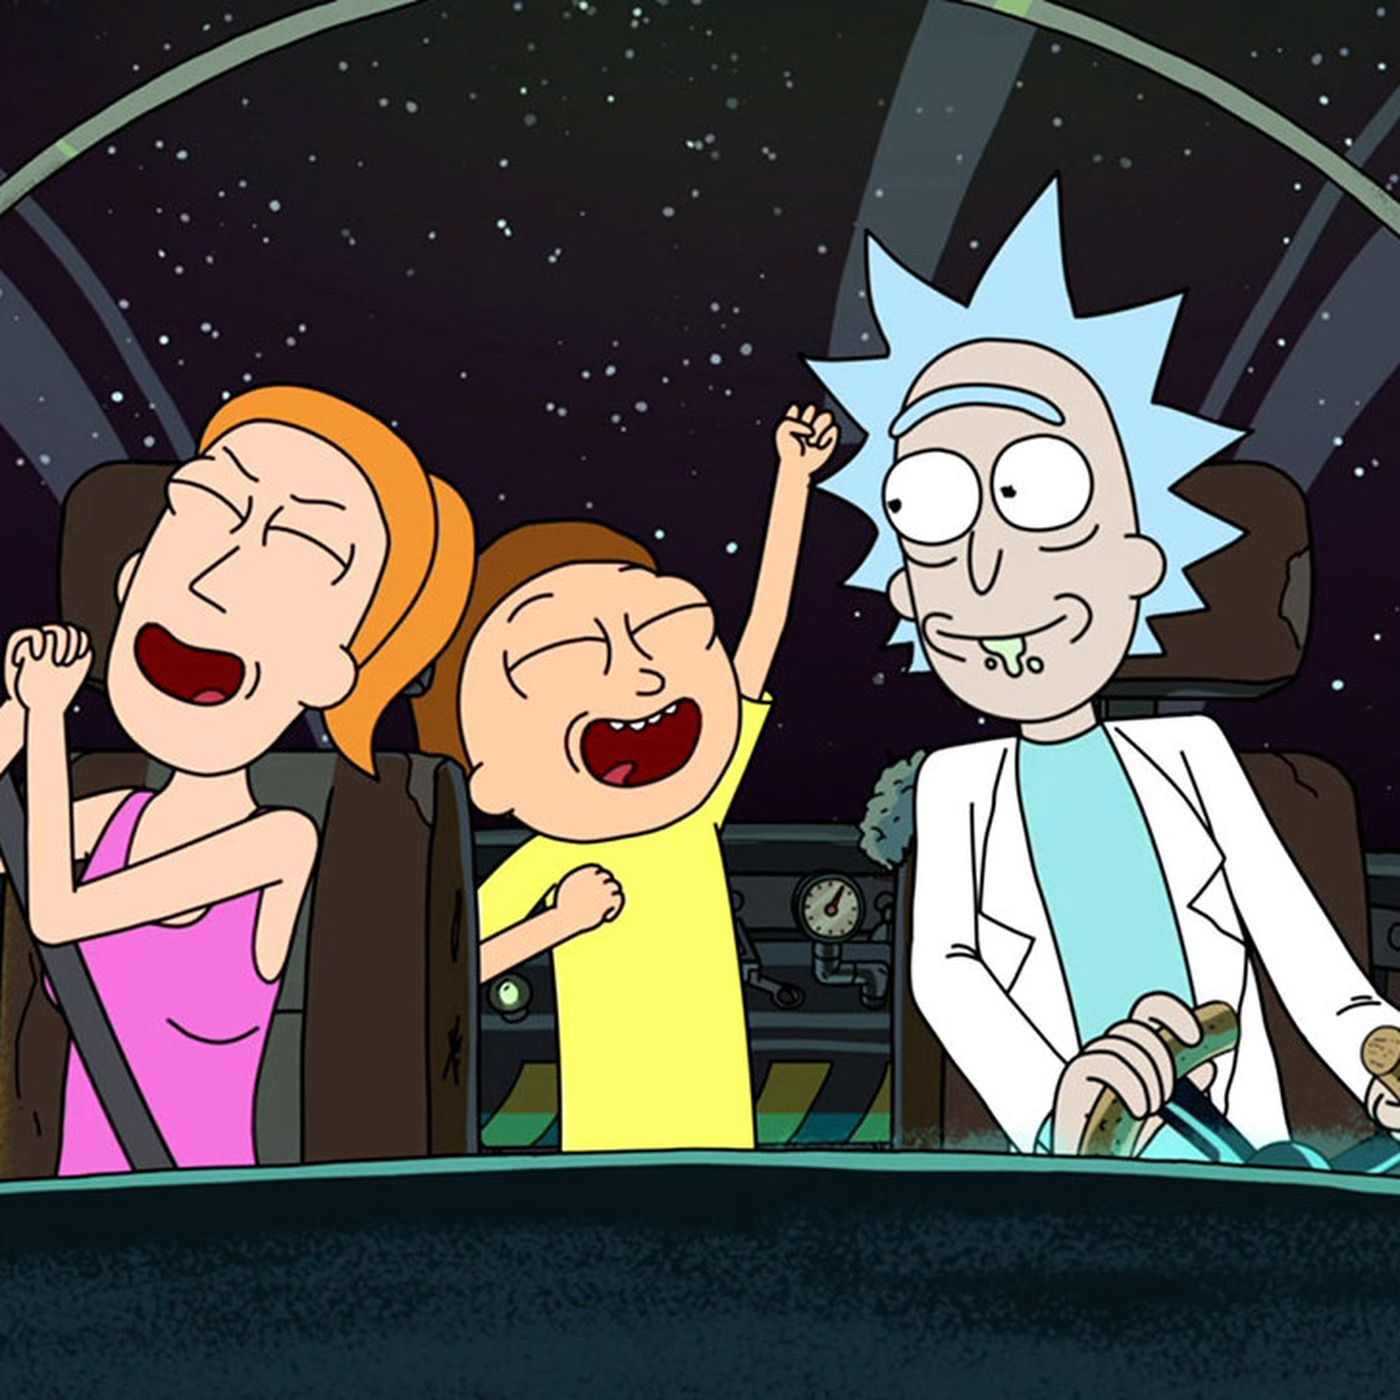 Rick and Morty is getting a whopping 70 more episodes - The Verge